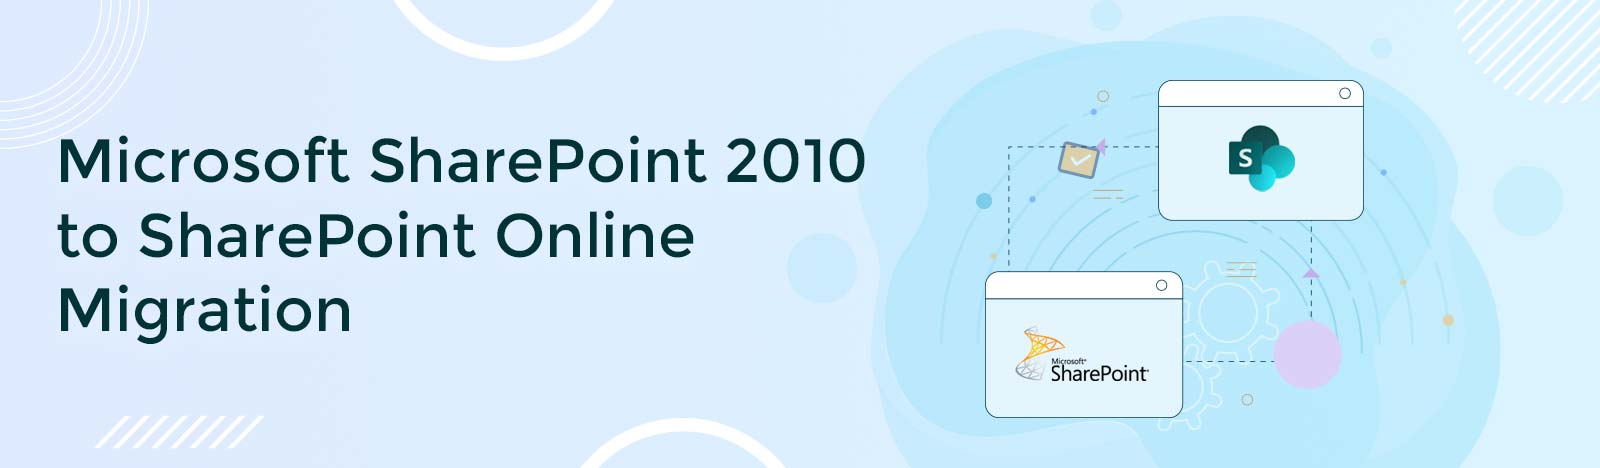 Microsoft SharePoint 2010 to SharePoint Online Migration